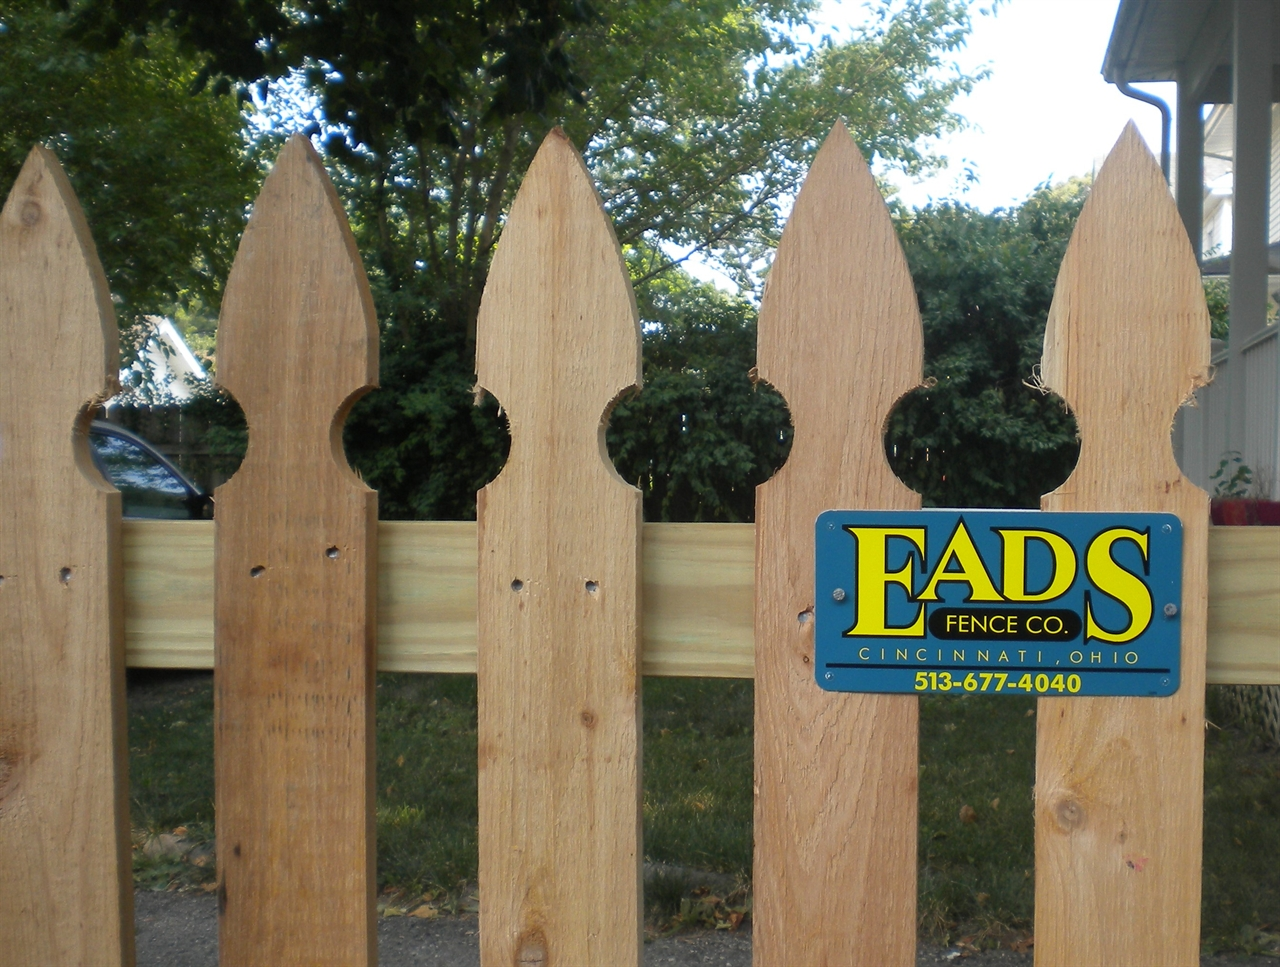 Ohio Fence Company Eads Fence Co French Gothic Picket